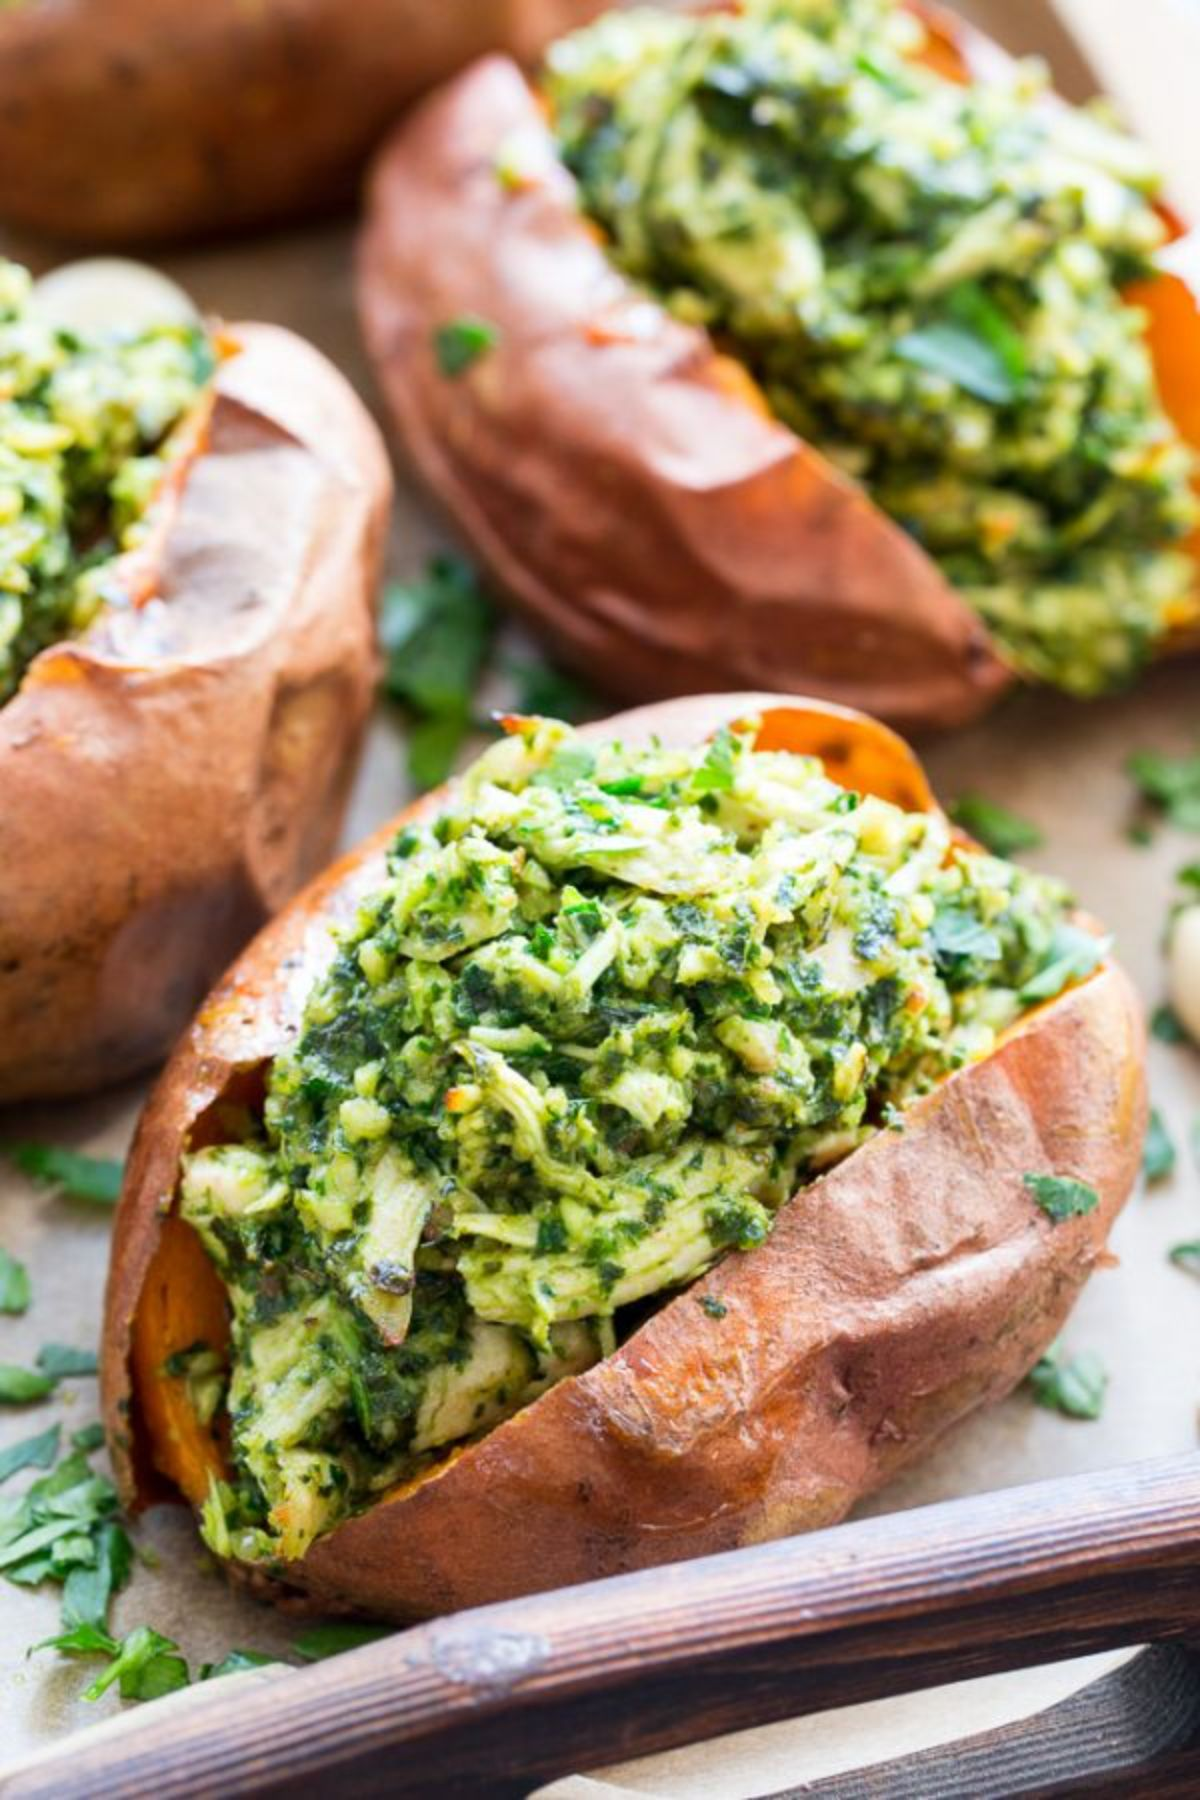 a baking tray with baked sweet potatoes stuffed with pesto chicken